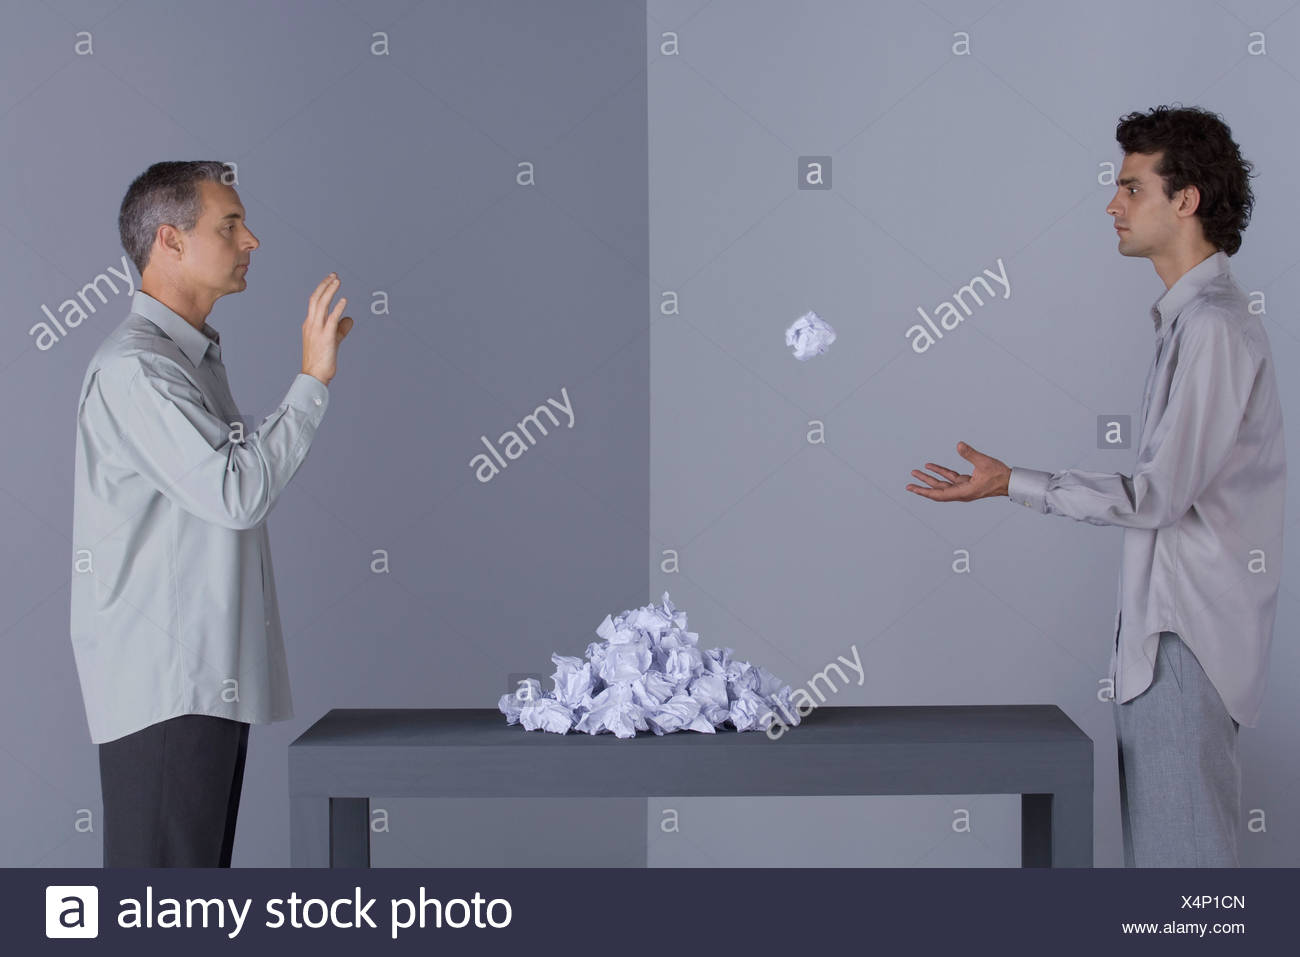 two men standing face to face, one throwing paper ball, pile of